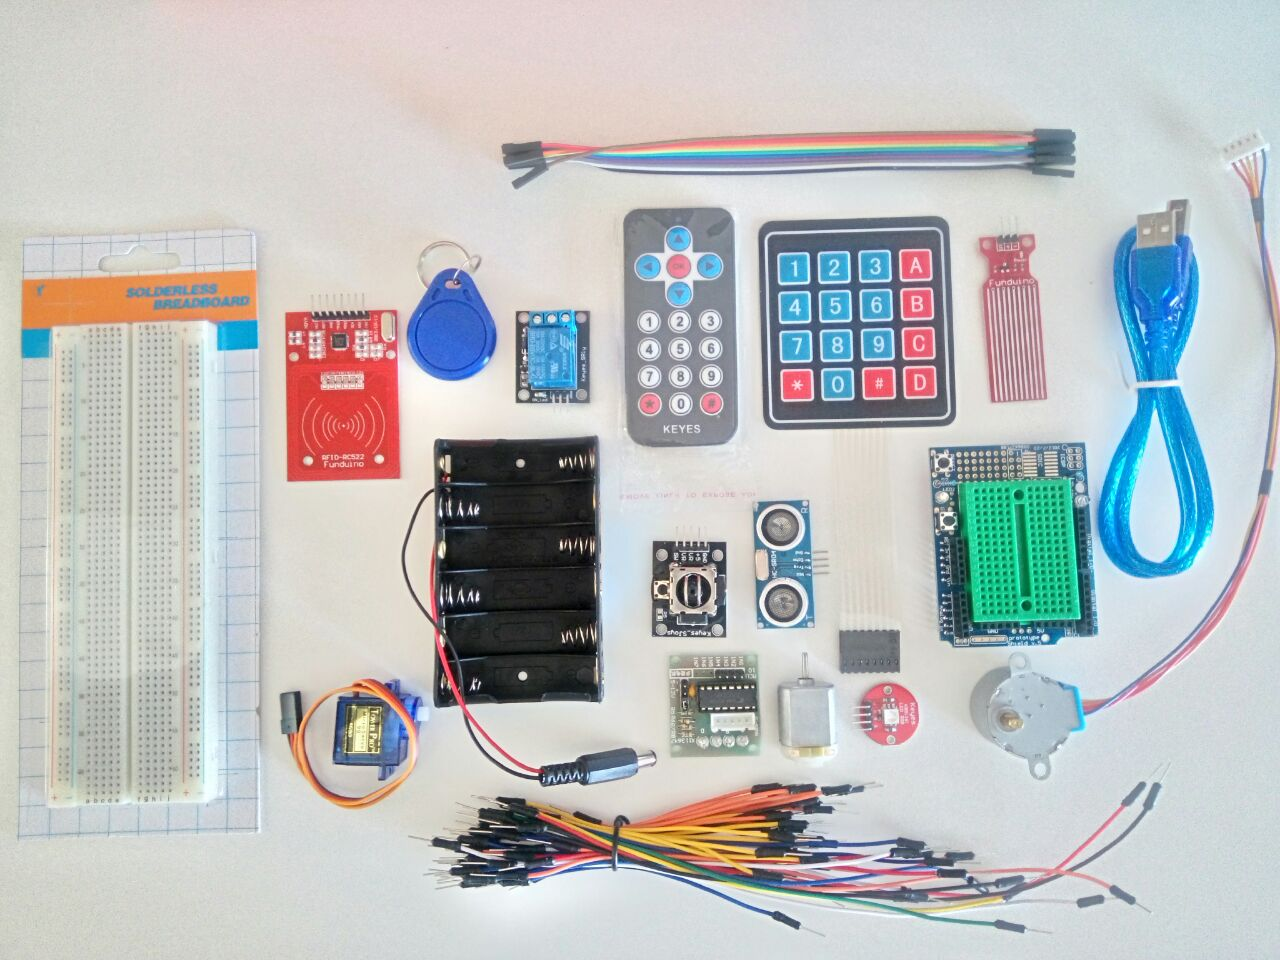 Opens | Open Source Hardware | Productos | Leaper ... on parallax rfid, mobile rfid, connected car rfid, nfc vs rfid, diy rfid,